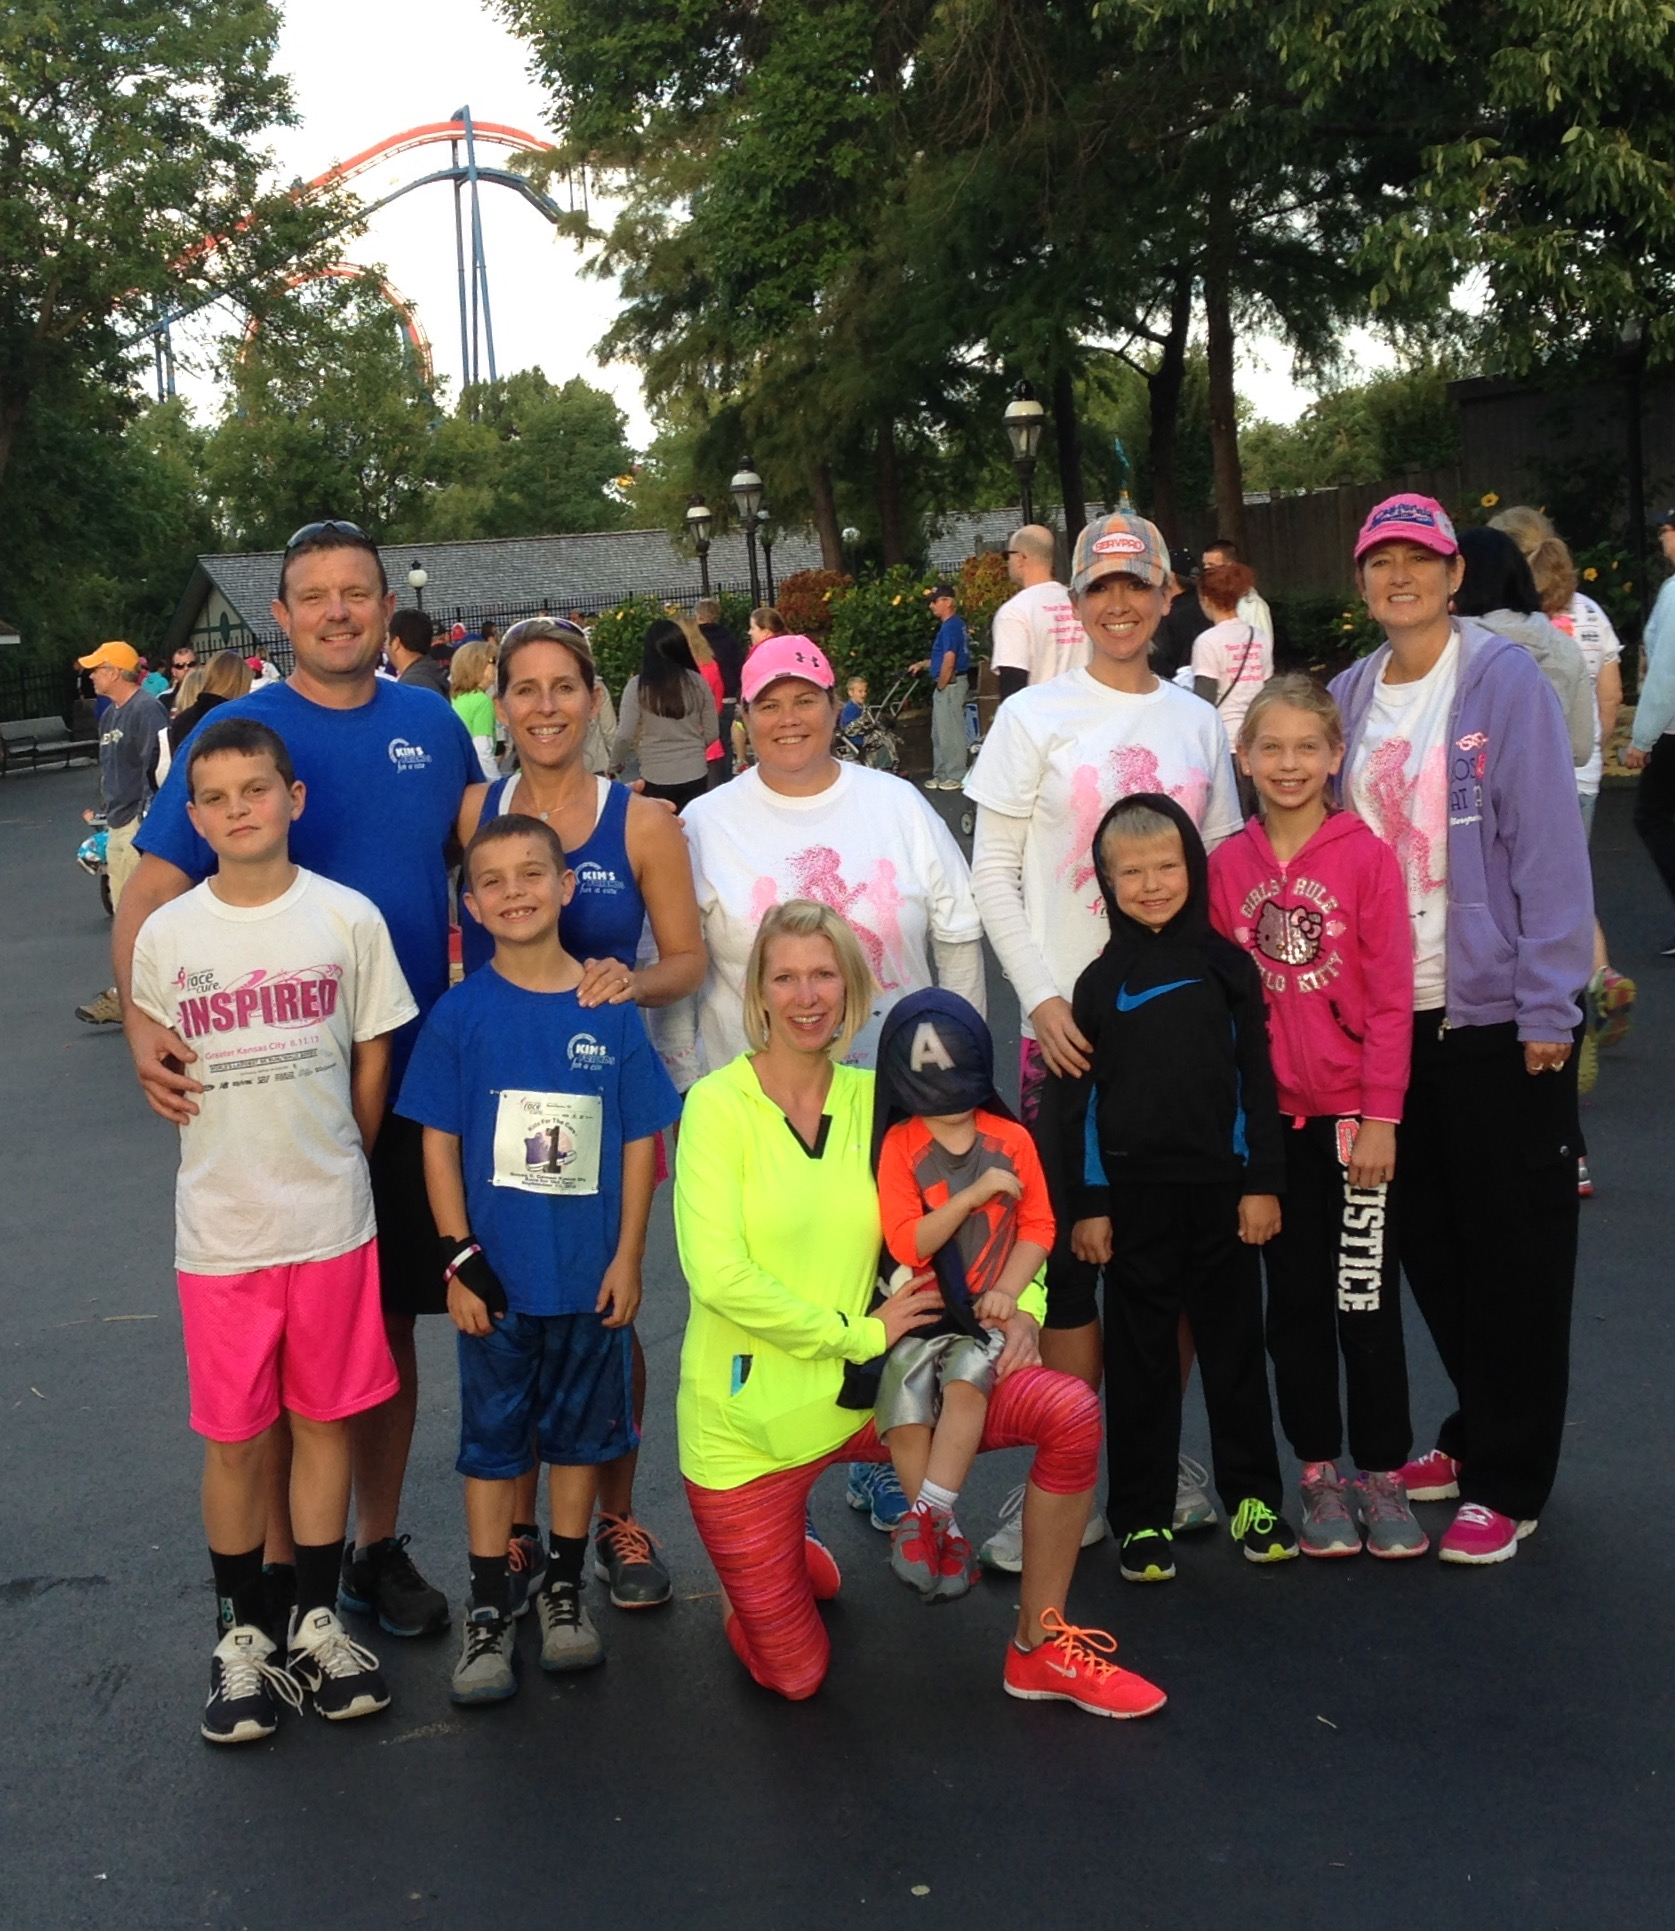 """Through participation and donations, the """"BOMA for Boobies"""" team raised more than $1,700 for breast cancer research at the Susan G. Komen 5K."""